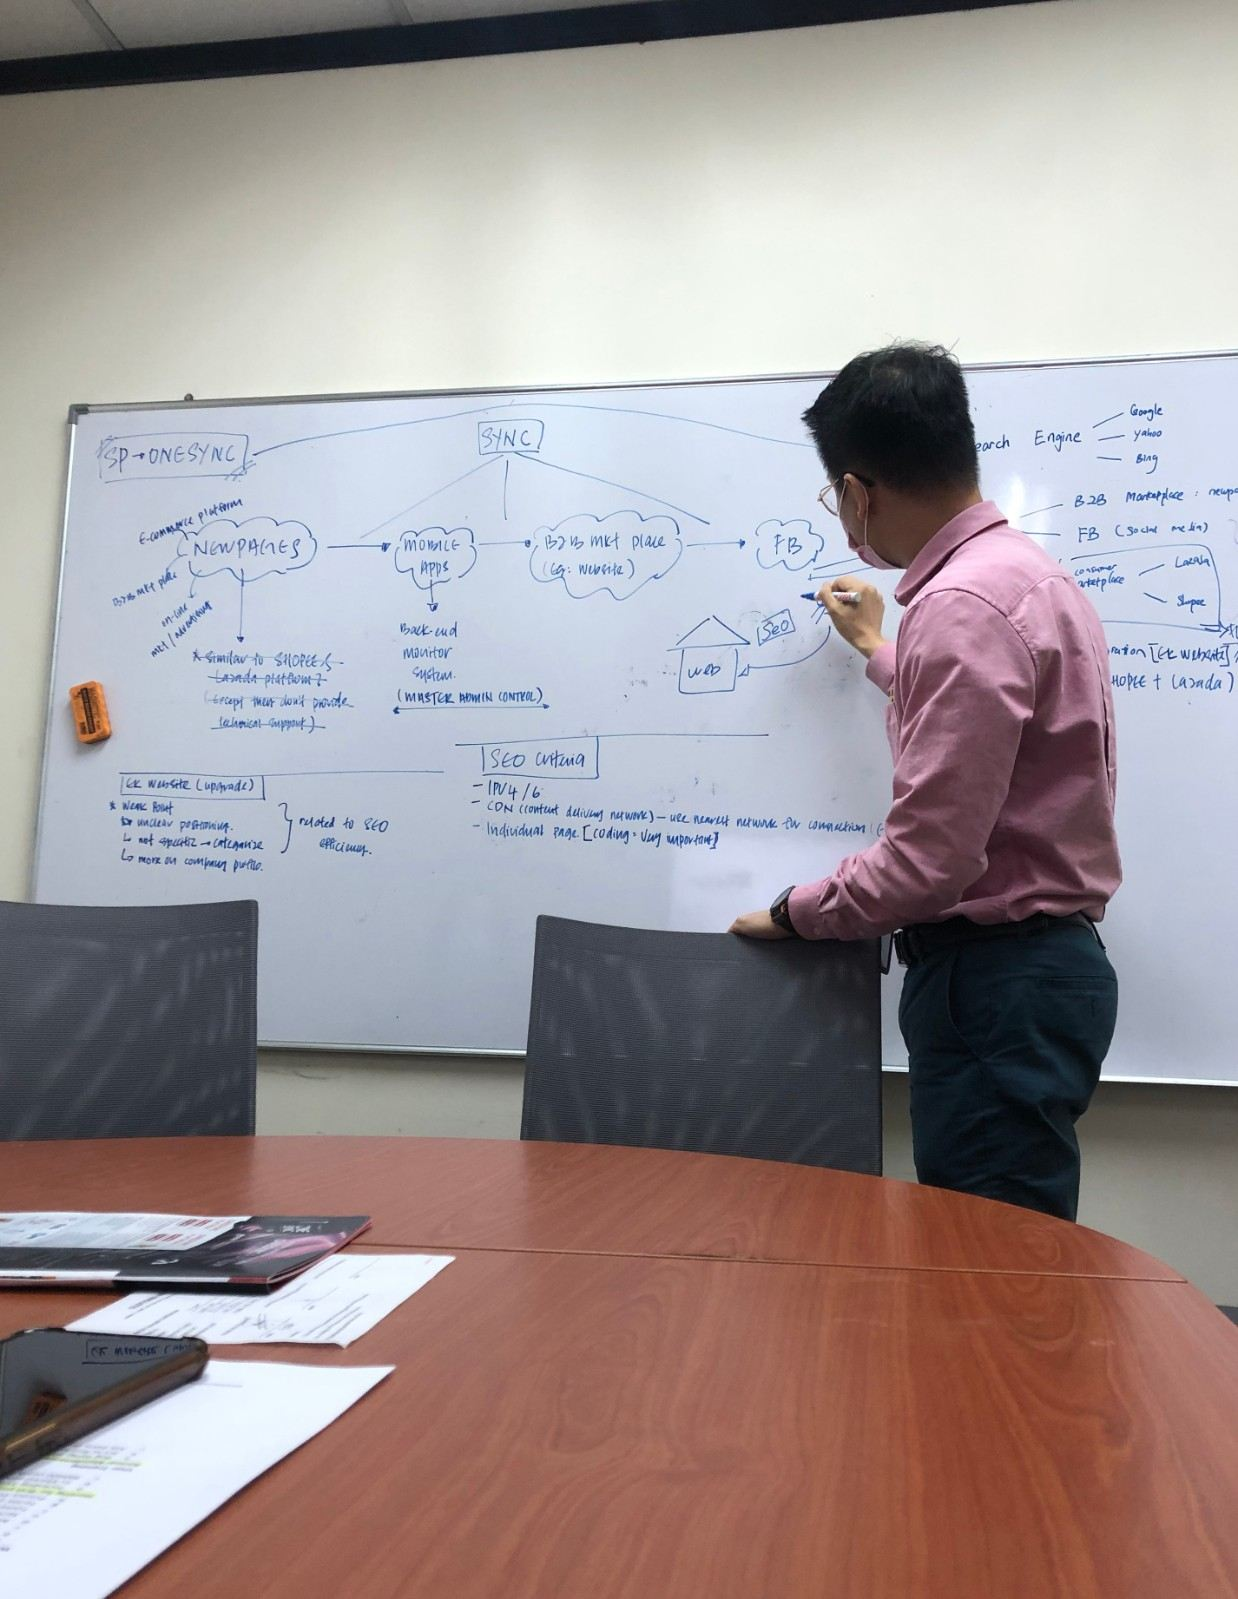 Vince Tay Online Marketing Consultant